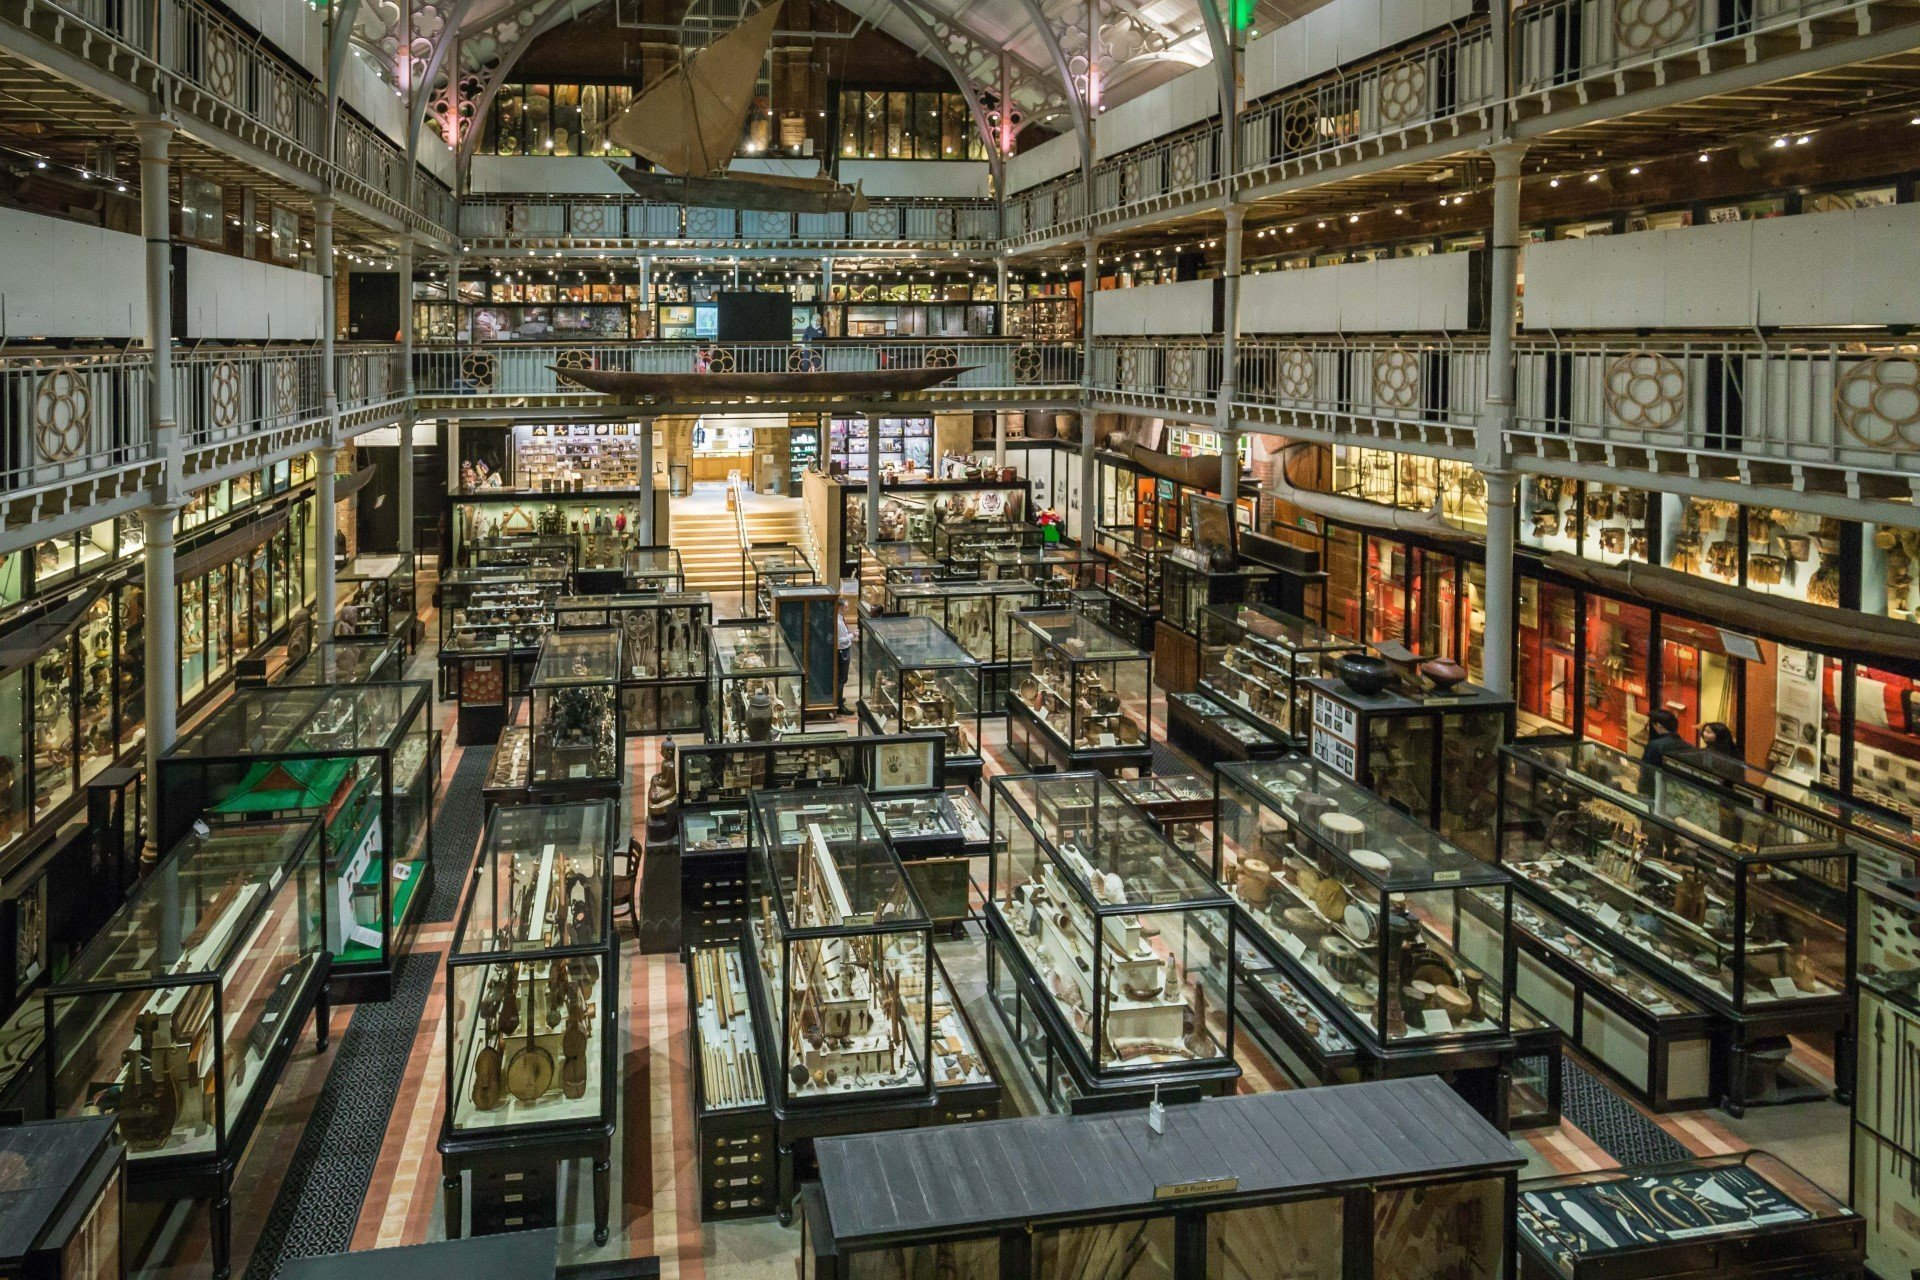 Pitt Rivers Museum reopening will reveal critical changes to displays